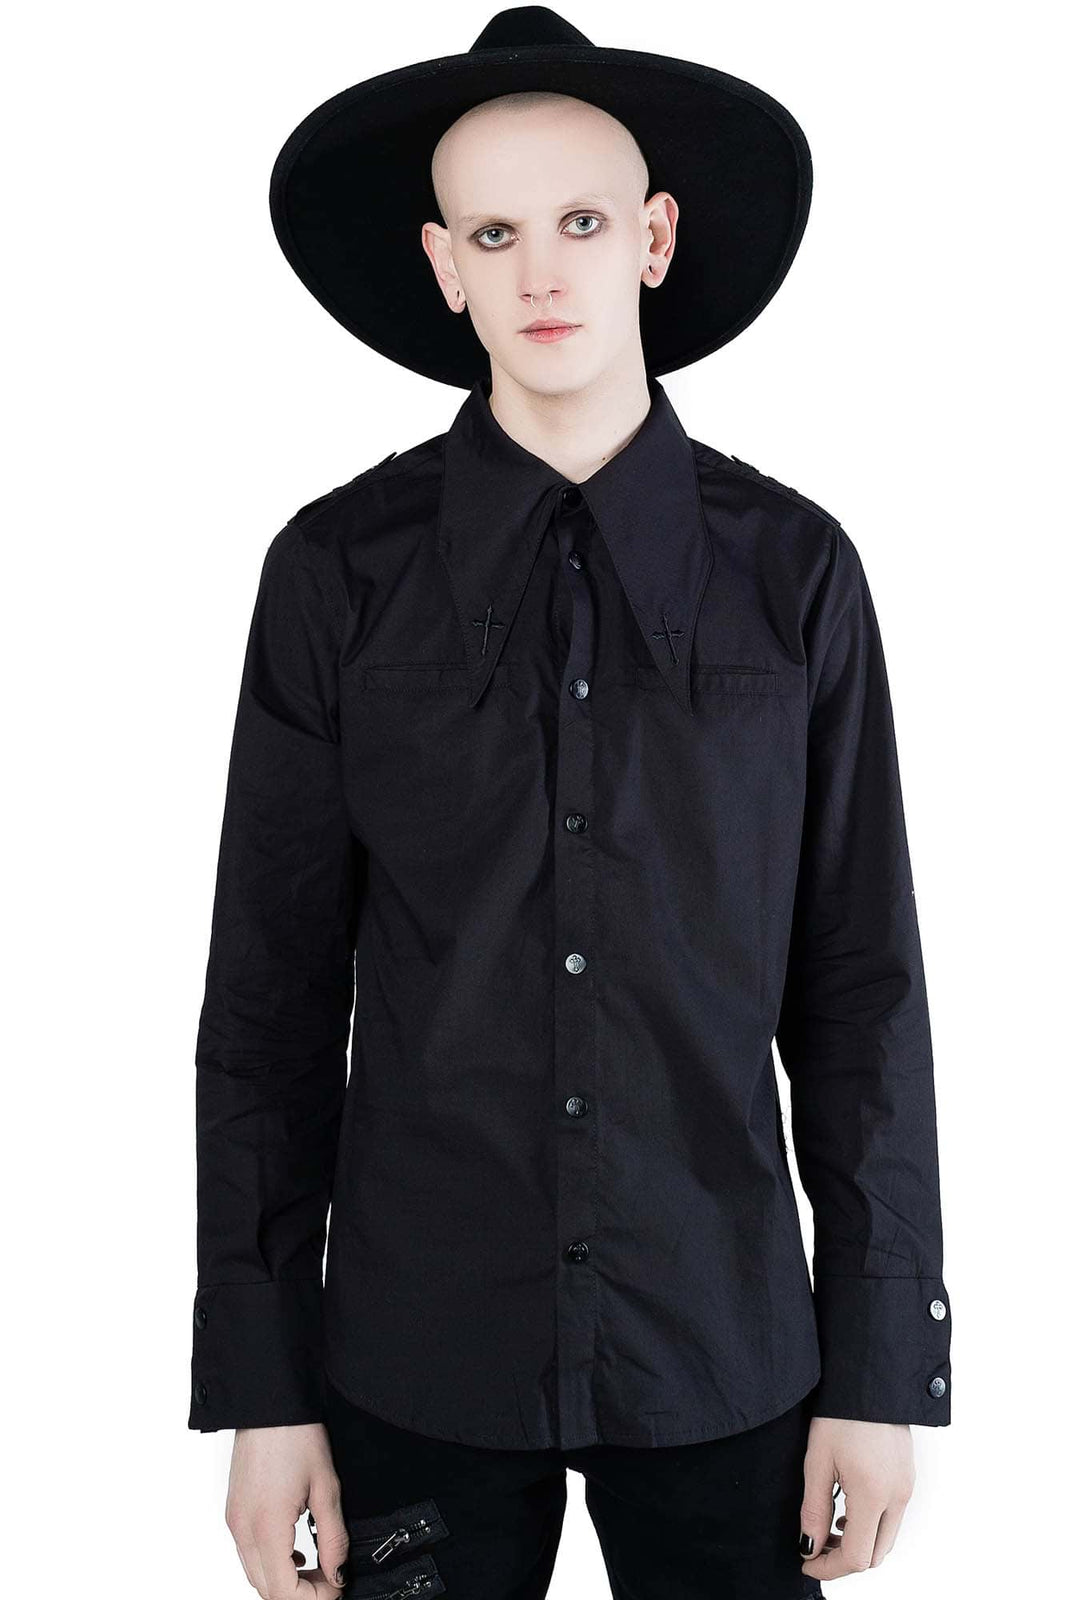 Crucifaction Button-Up Shirt